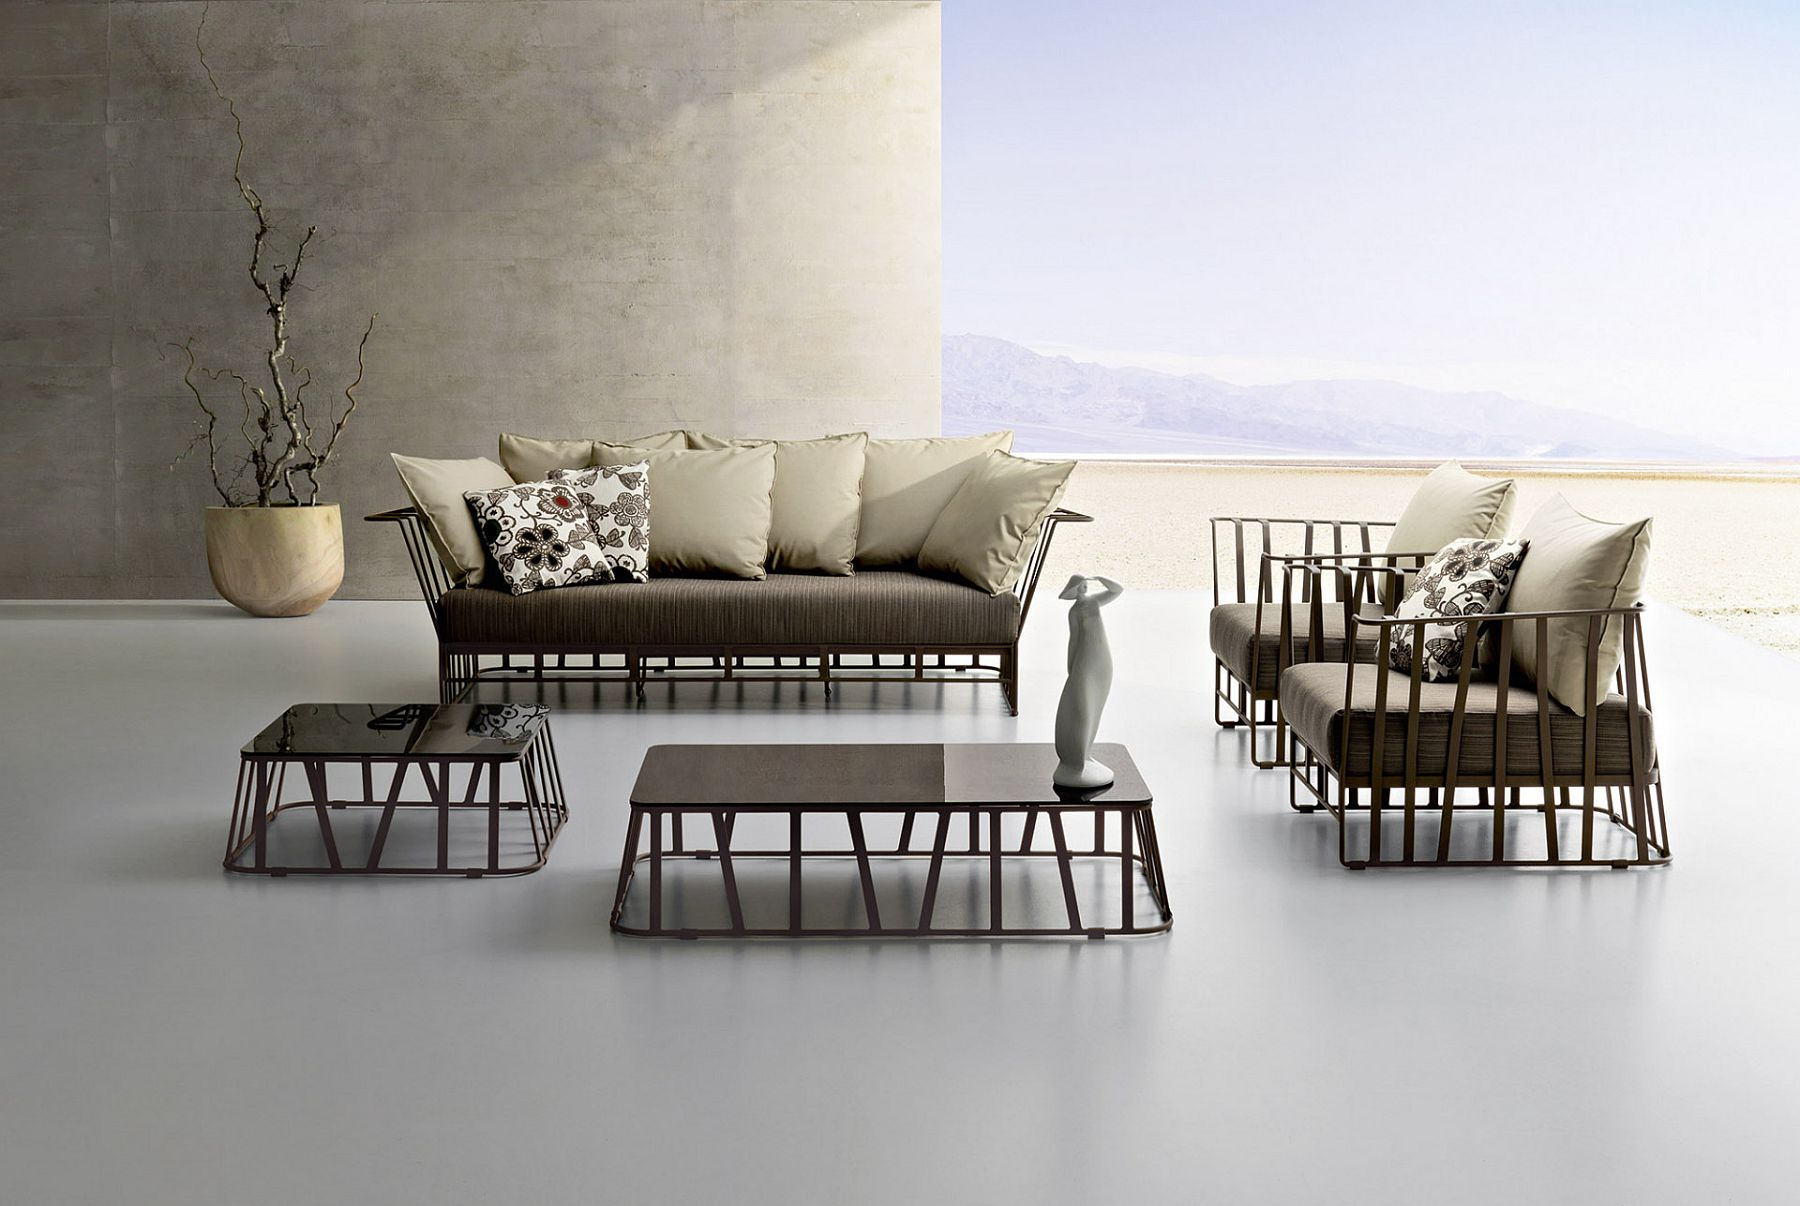 Minimal and stylish outdoor decor from Roberti